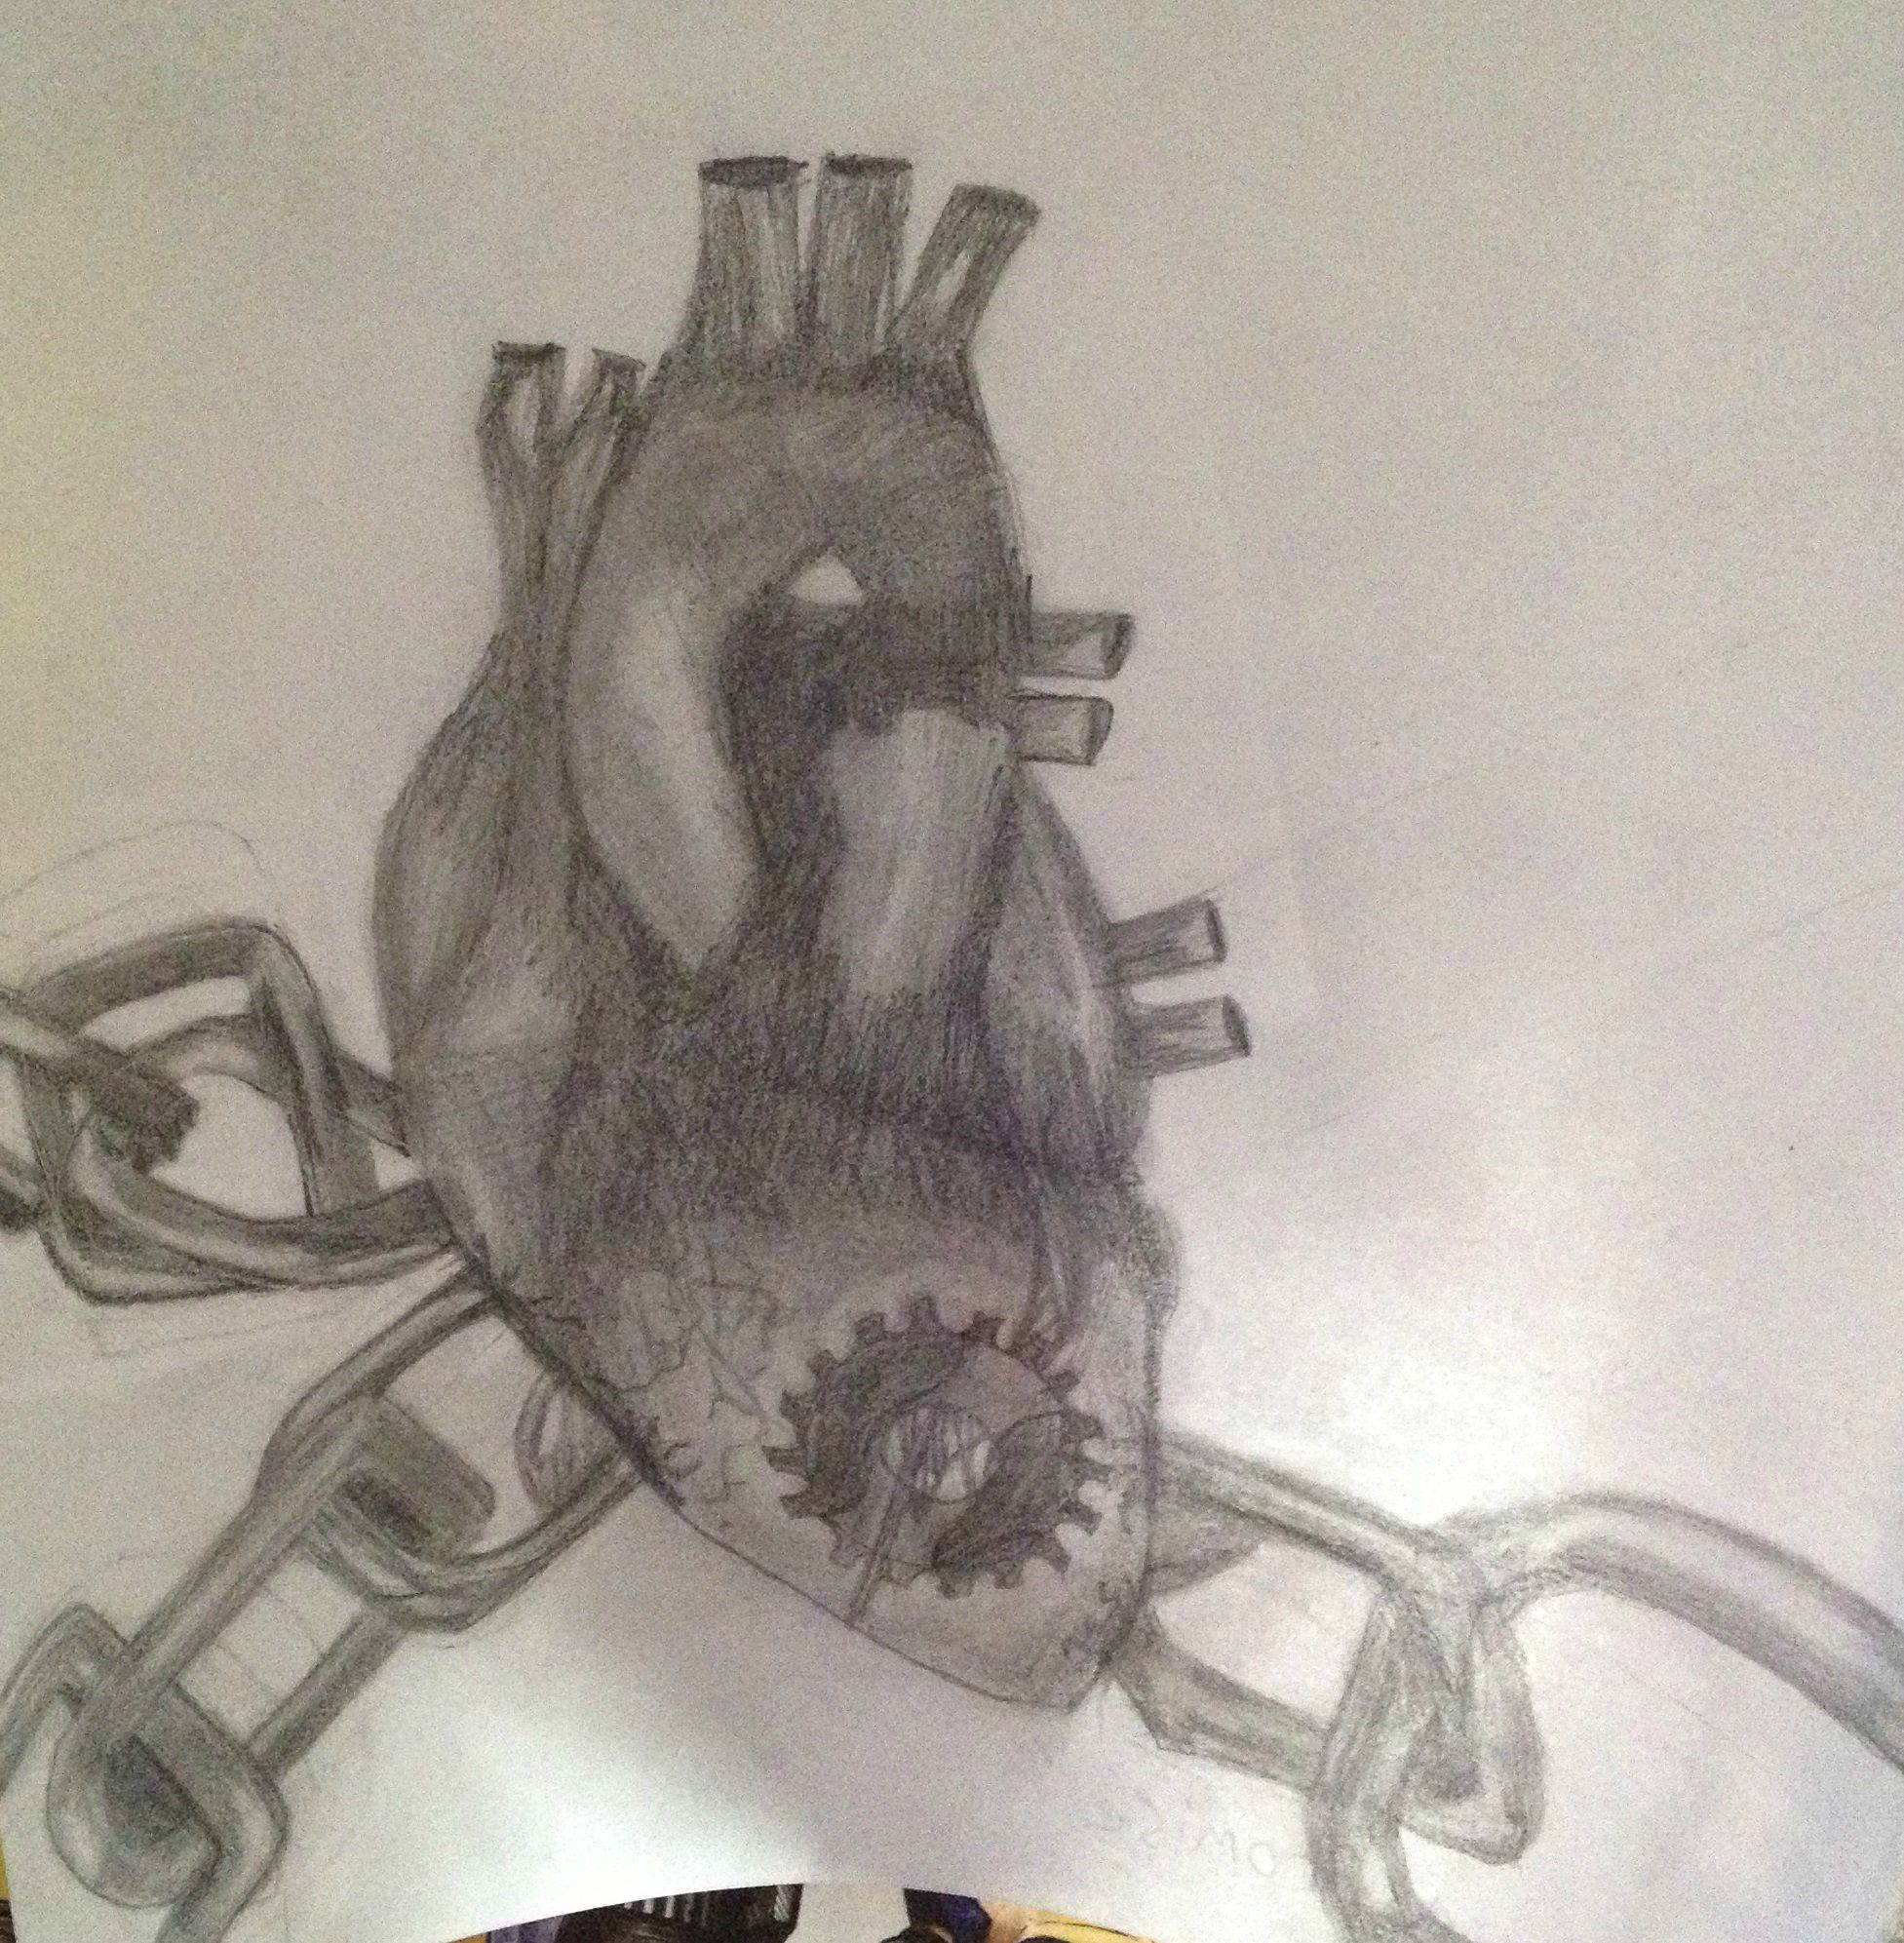 1953x1993 My Friend Courtney's Drawing Of A Heart Bound In Chains